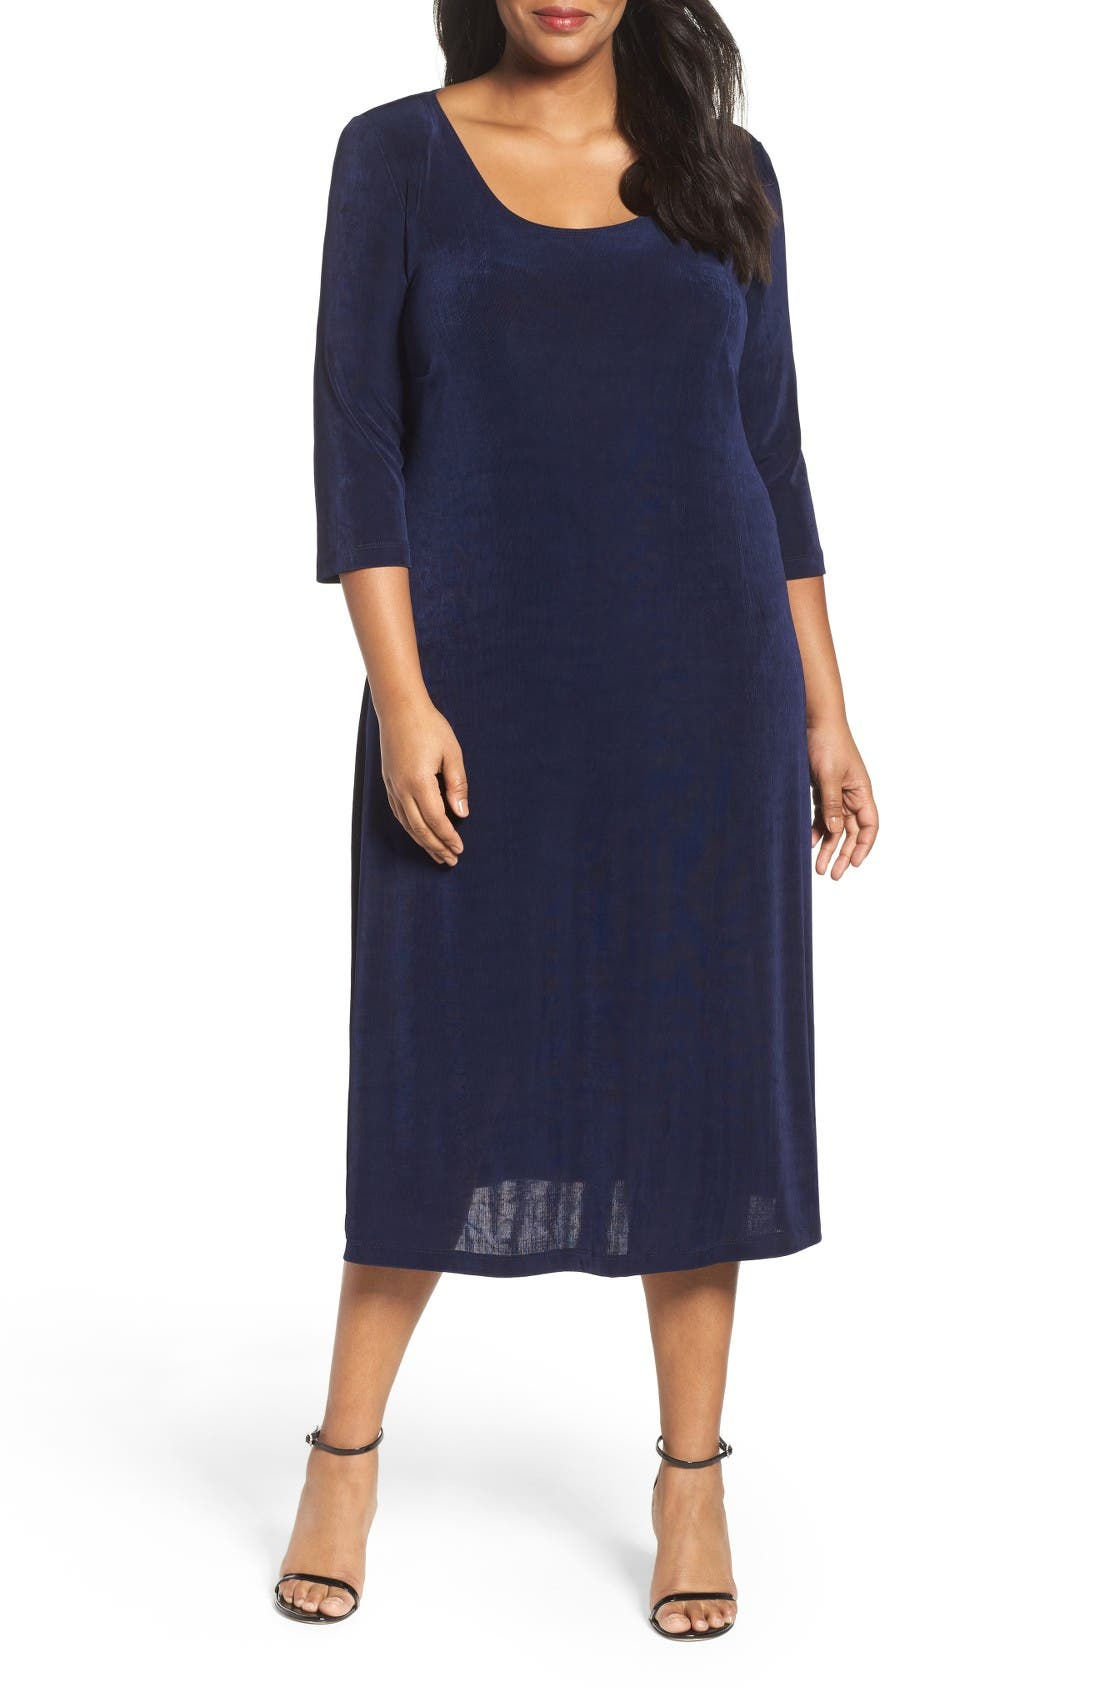 Vikki Vi Three-Quarter Sleeve Stretch Knit A-Line Dress (Plus Size)